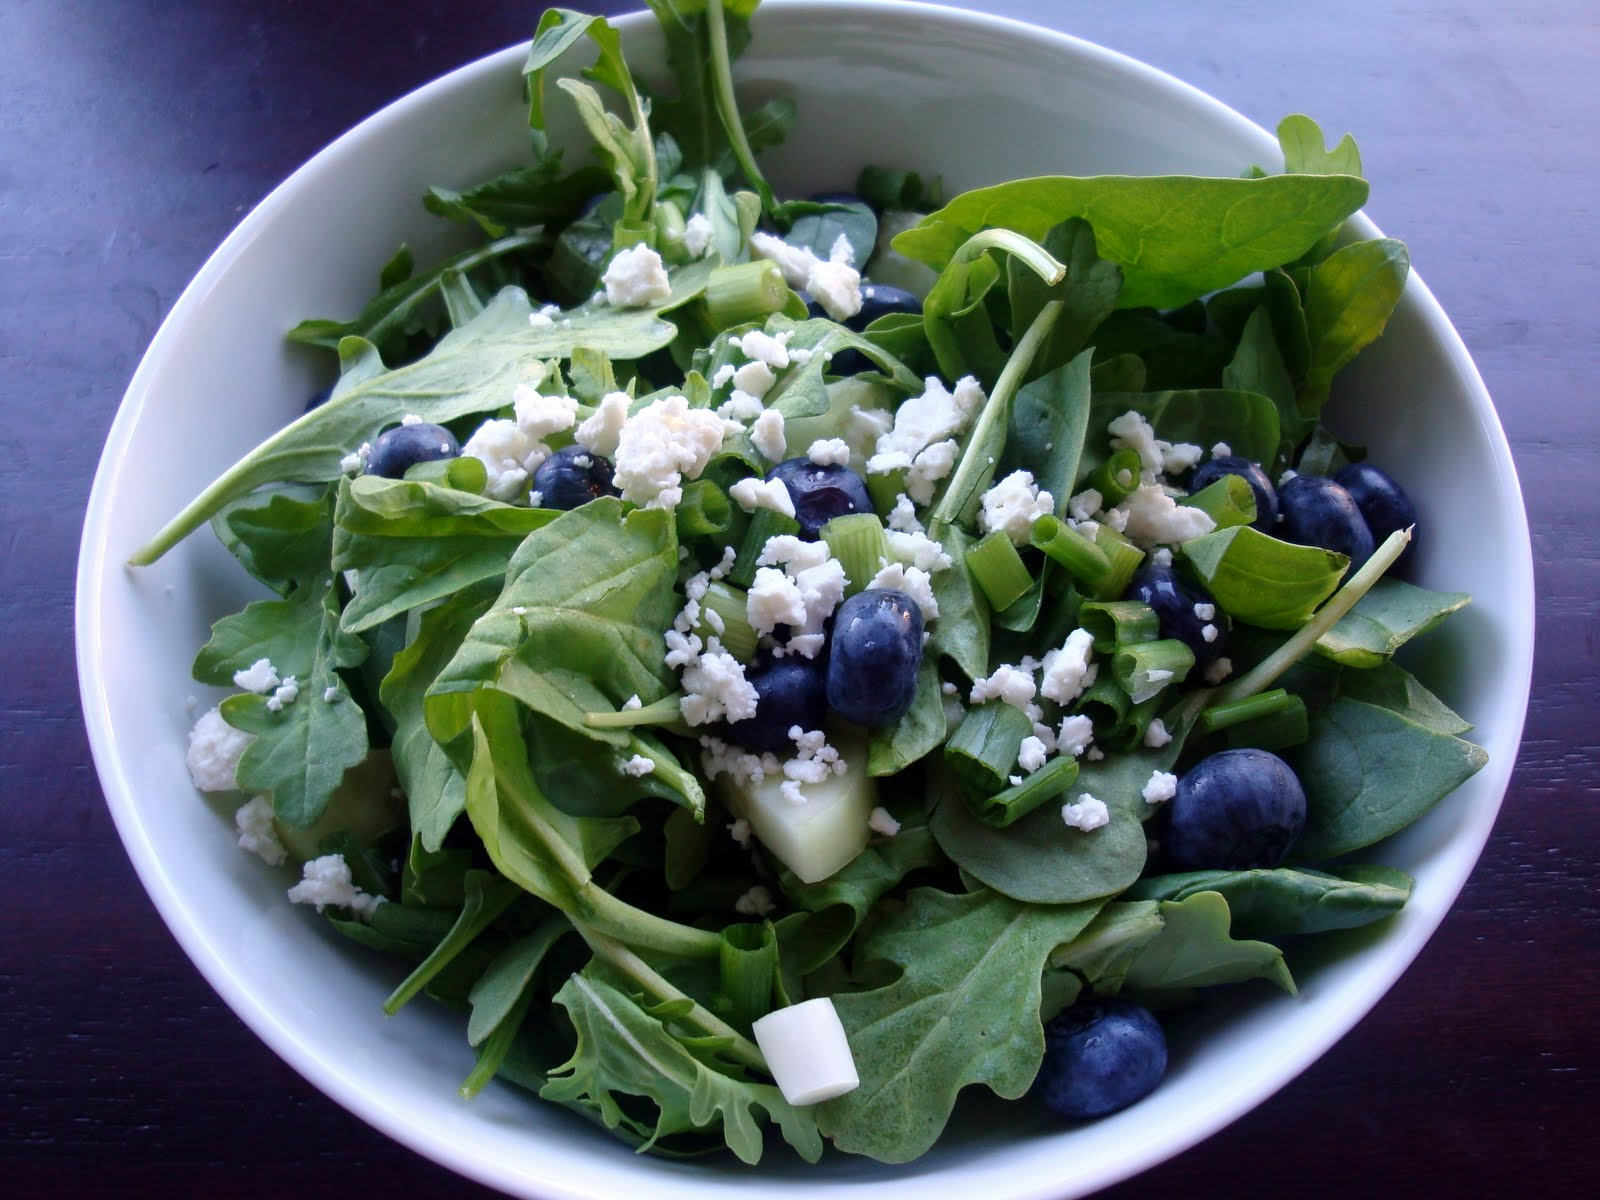 with lots of fresh greens cucumber green onions and blueberries